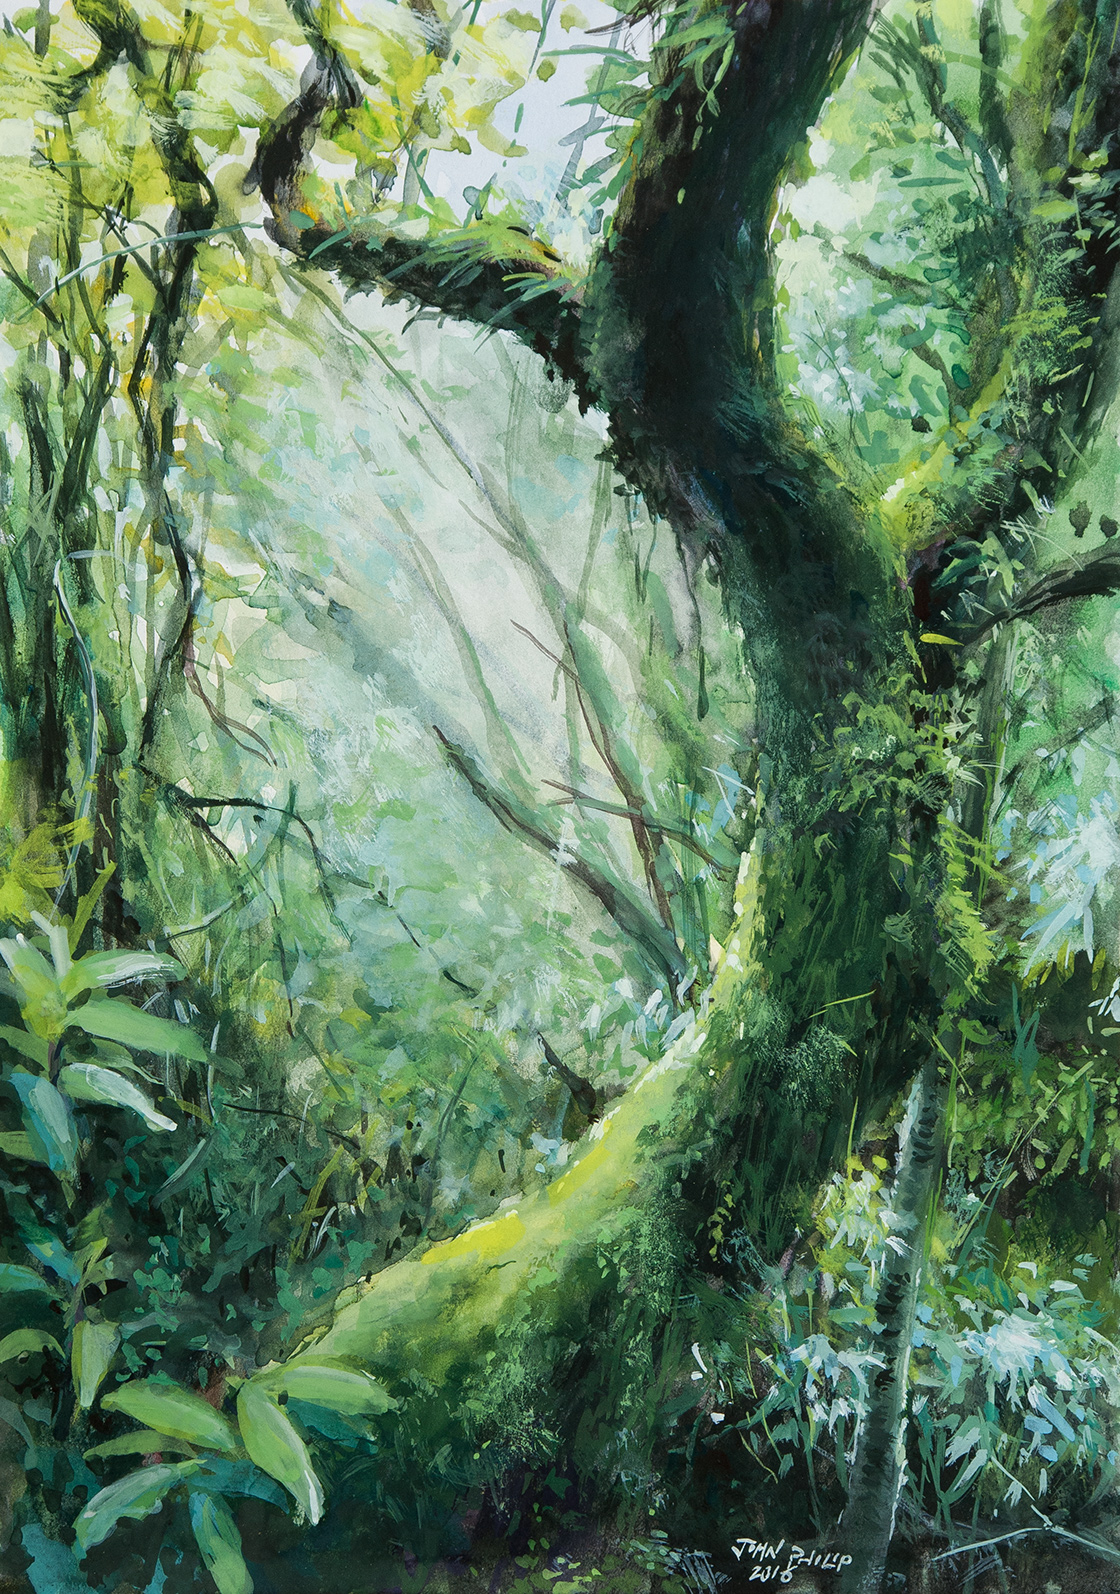 Guache painting of a Forest in the Buffelskloof Nature Reserve